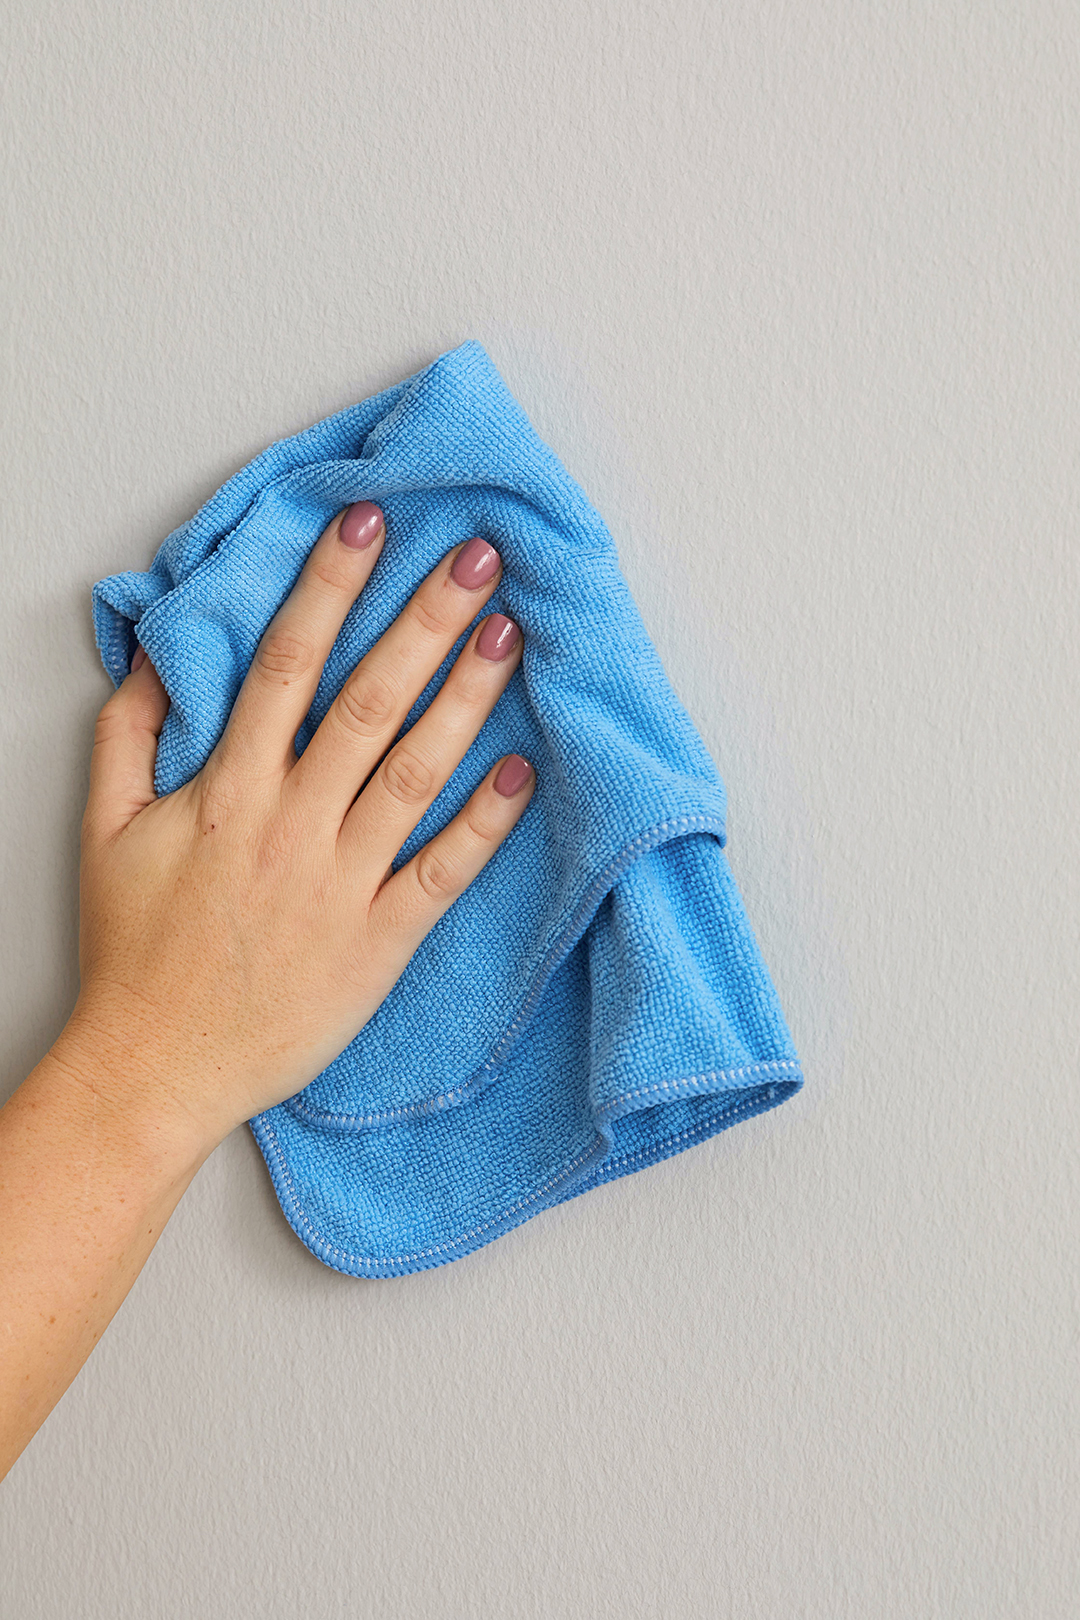 cleaning wall with blue cloth